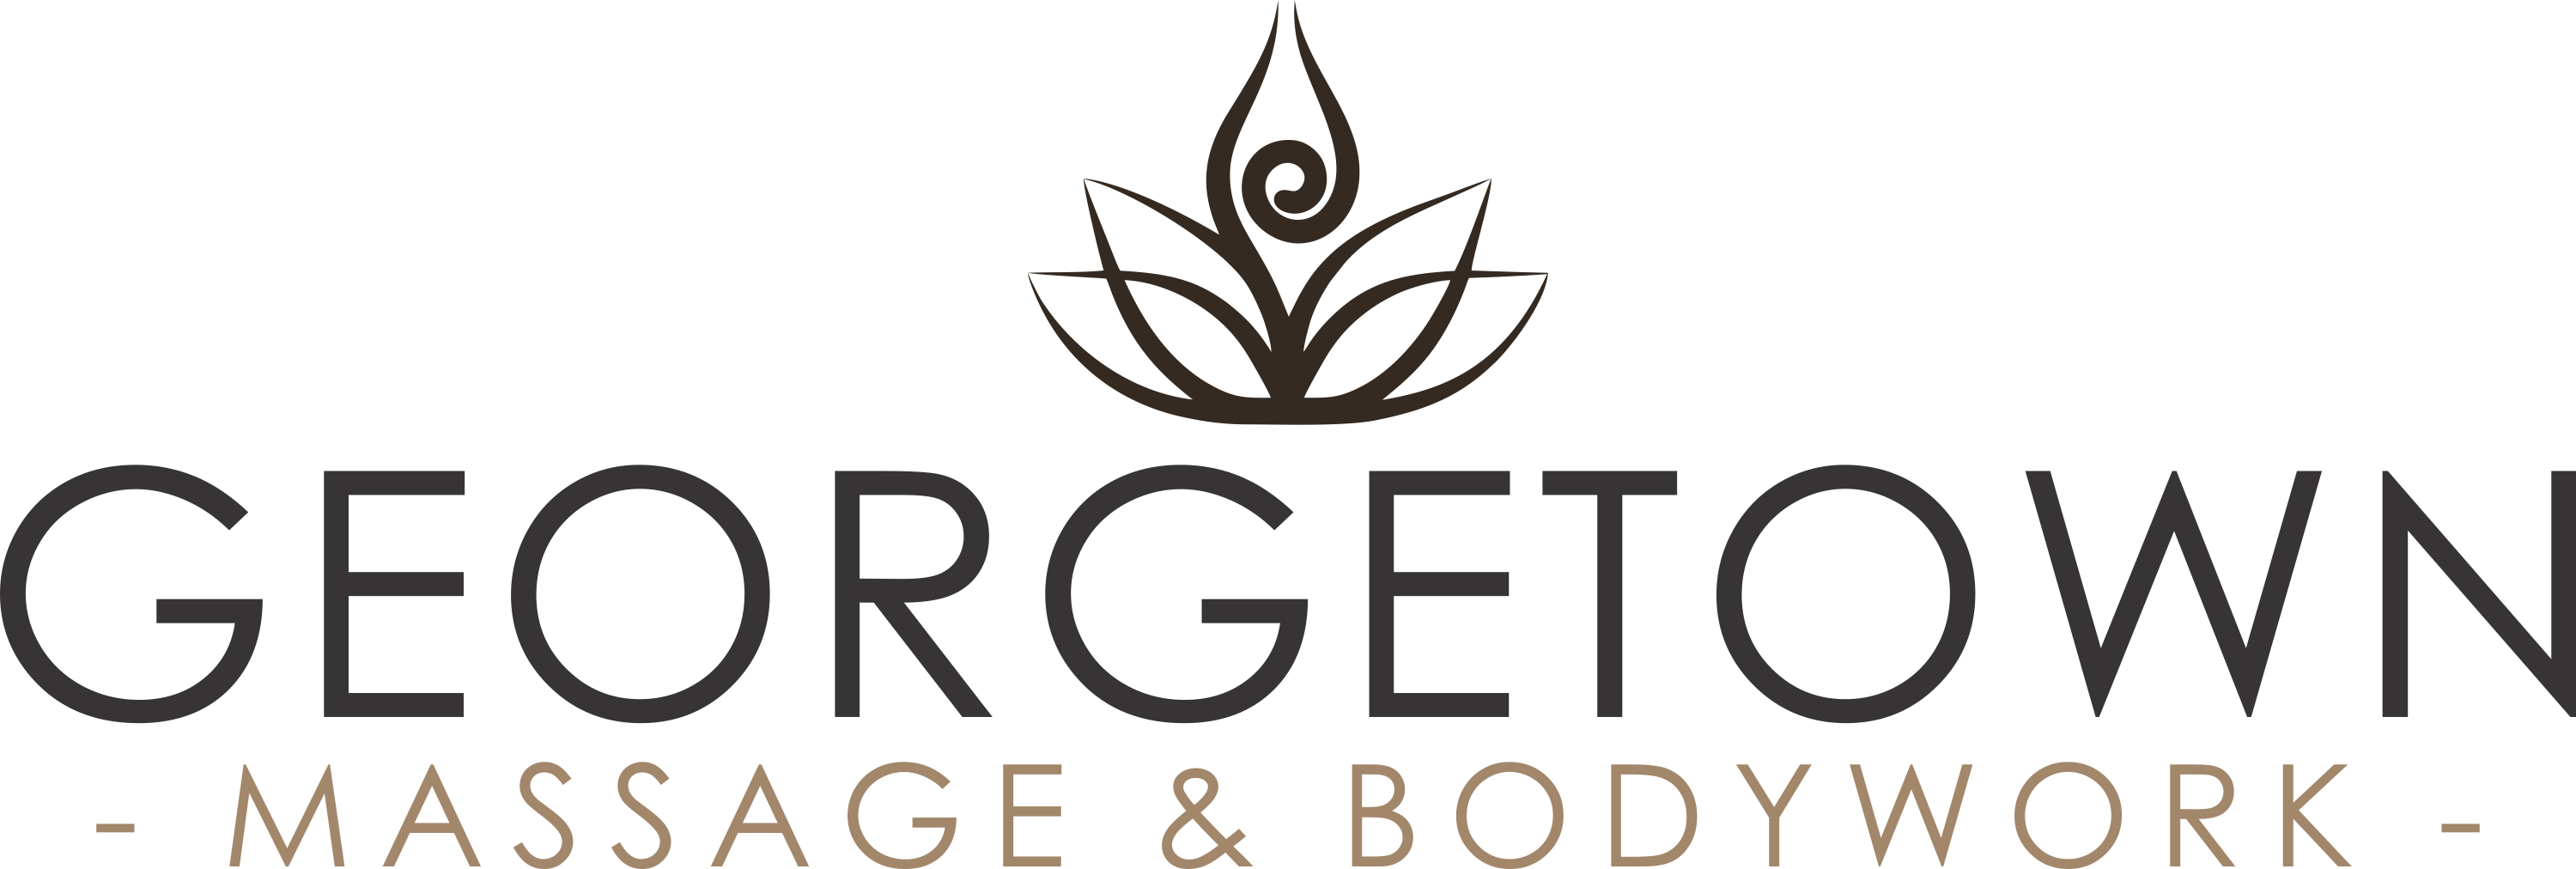 Georgetown Massage and Bodywork